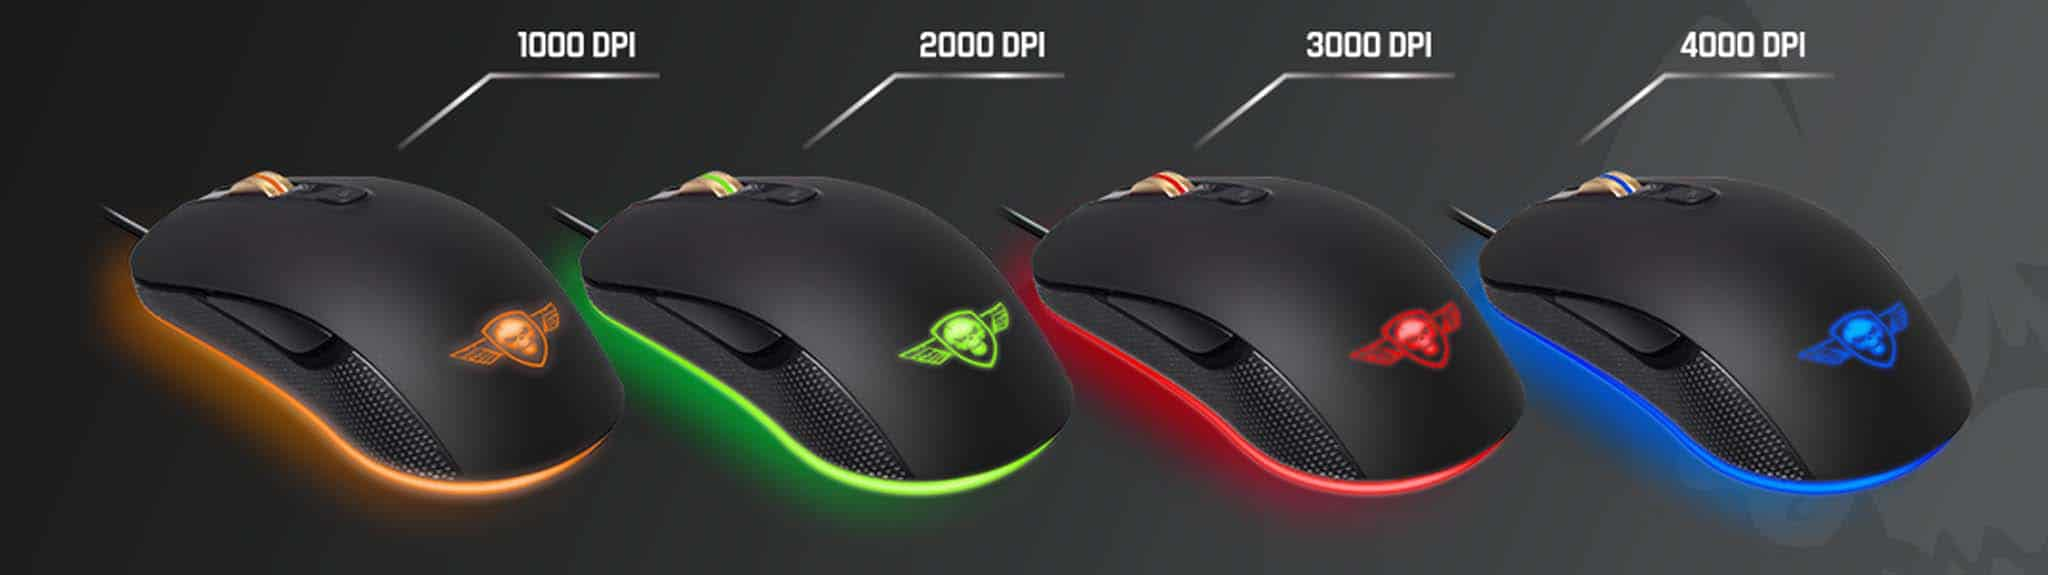 SOG PRO-M6 Gaming Mouse